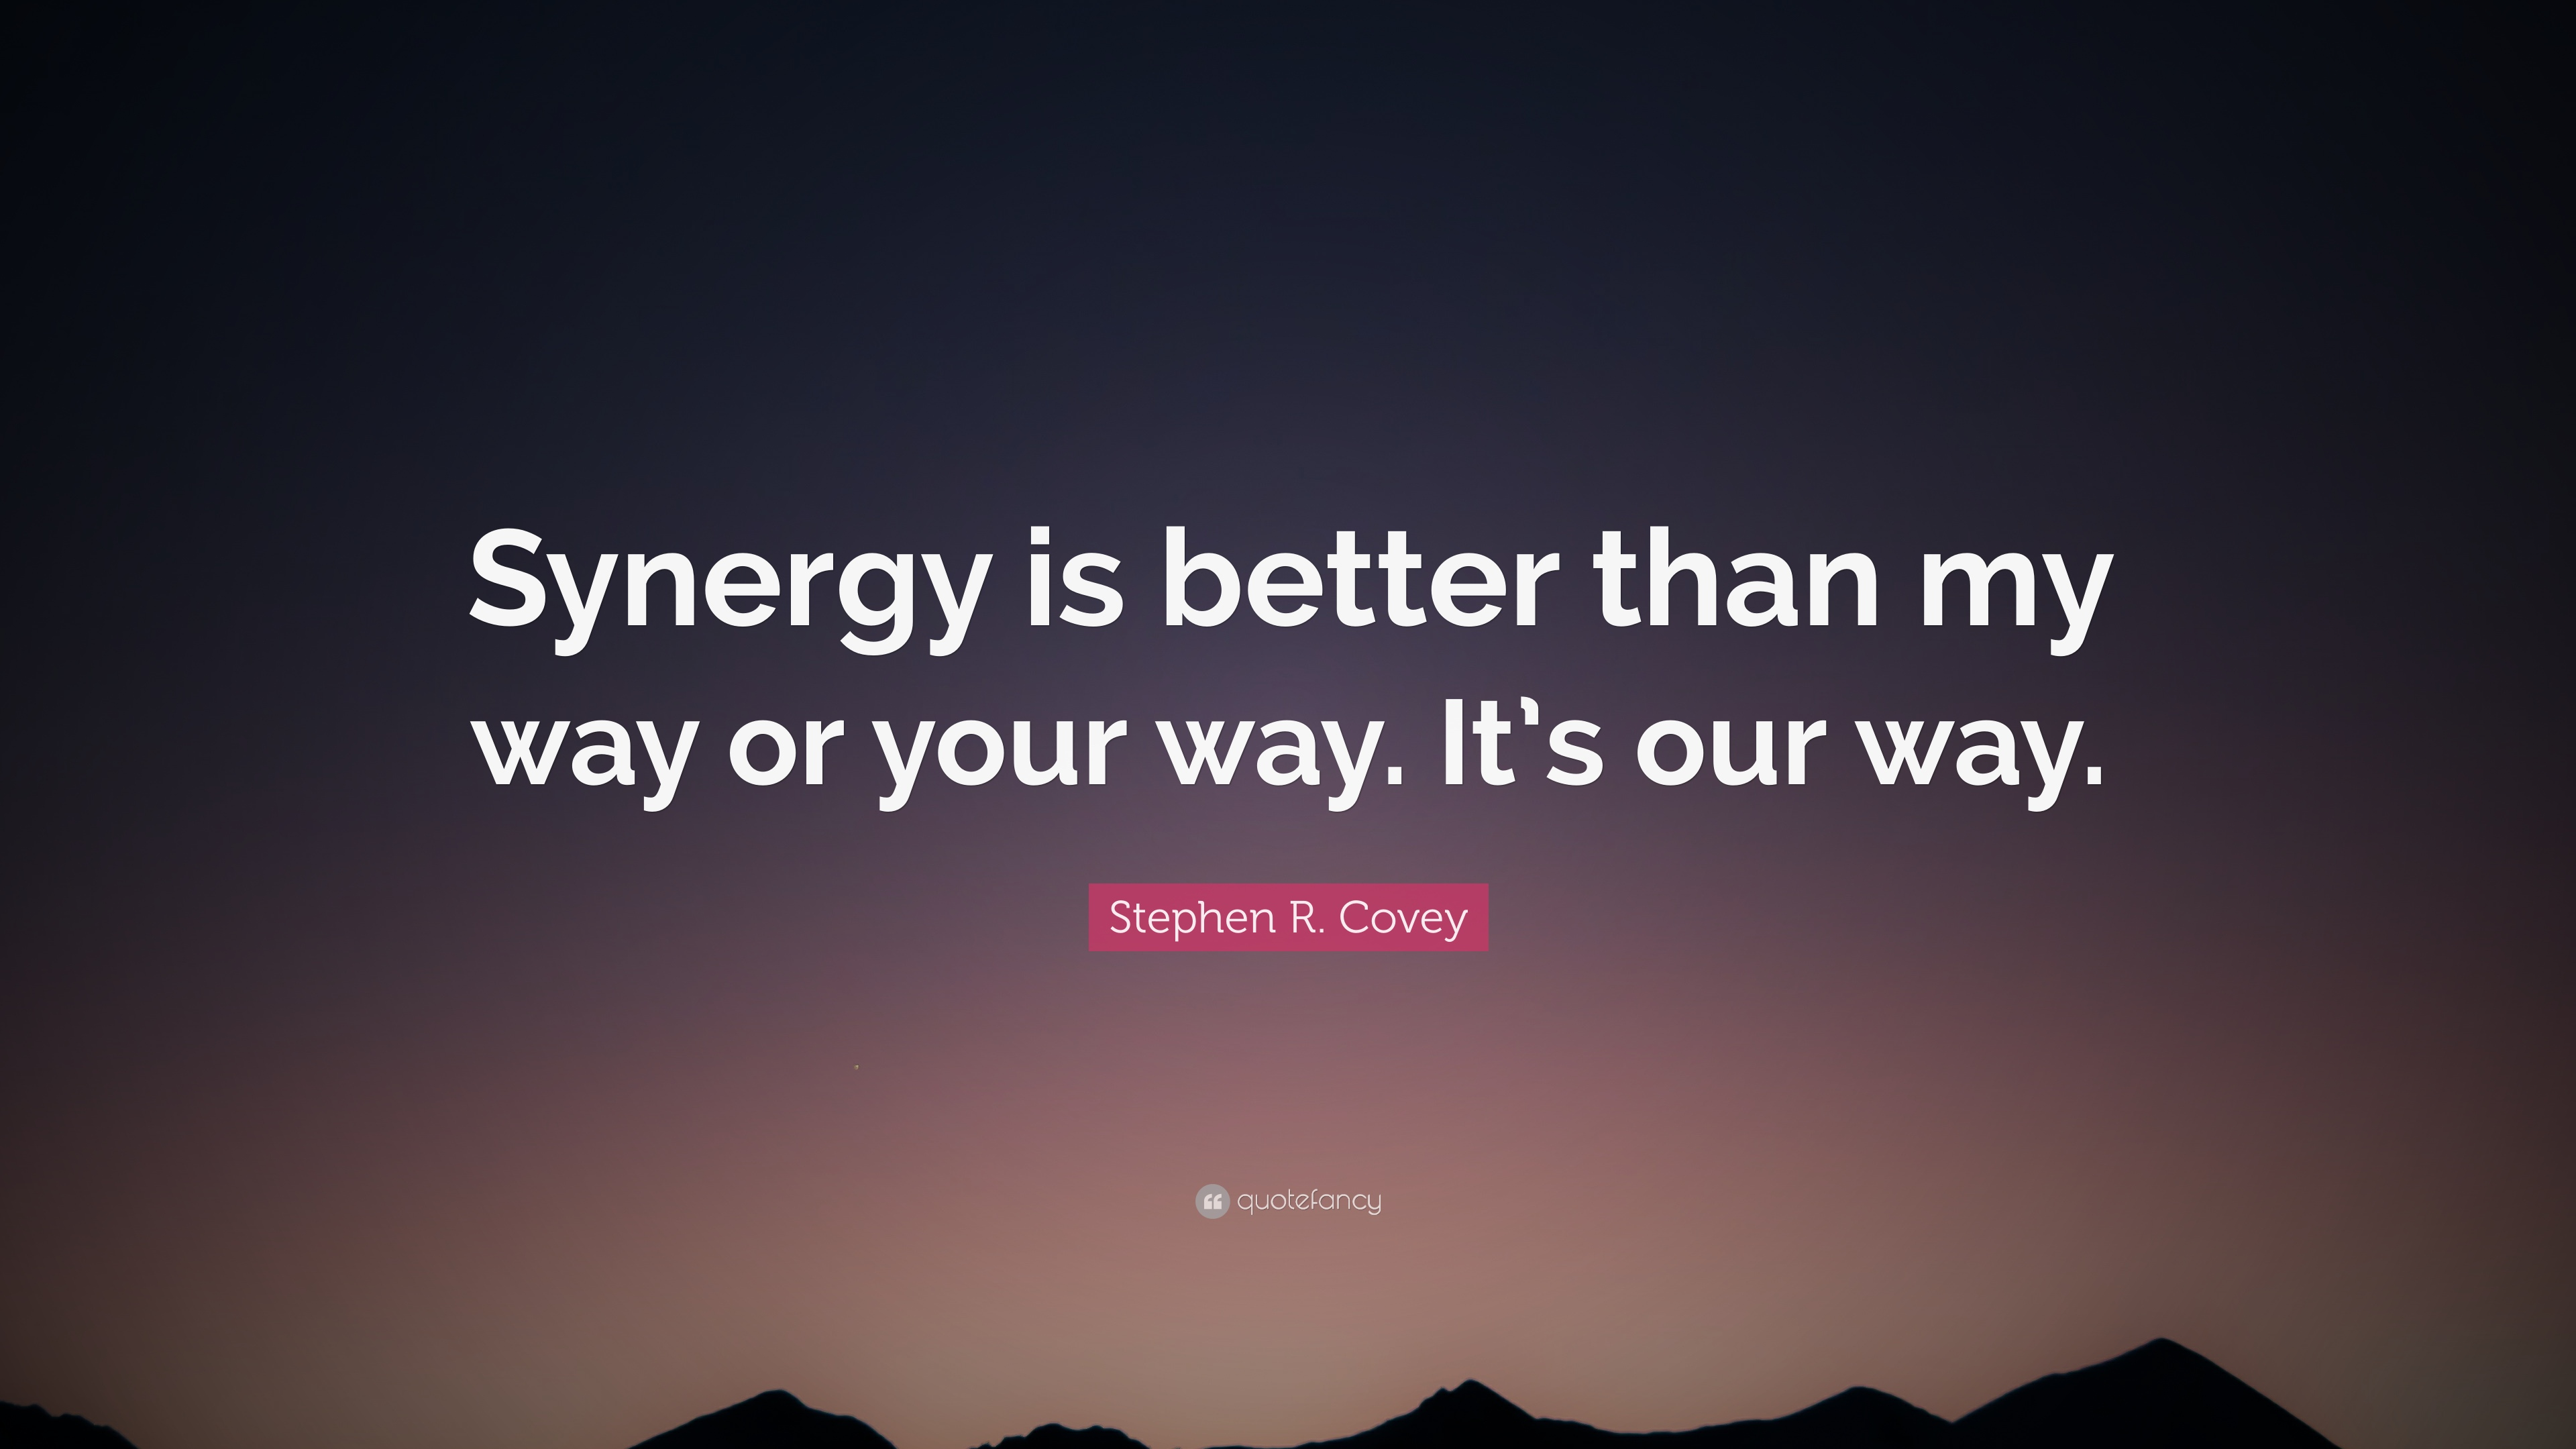 Stephen R Covey Quotes 100 Wallpapers